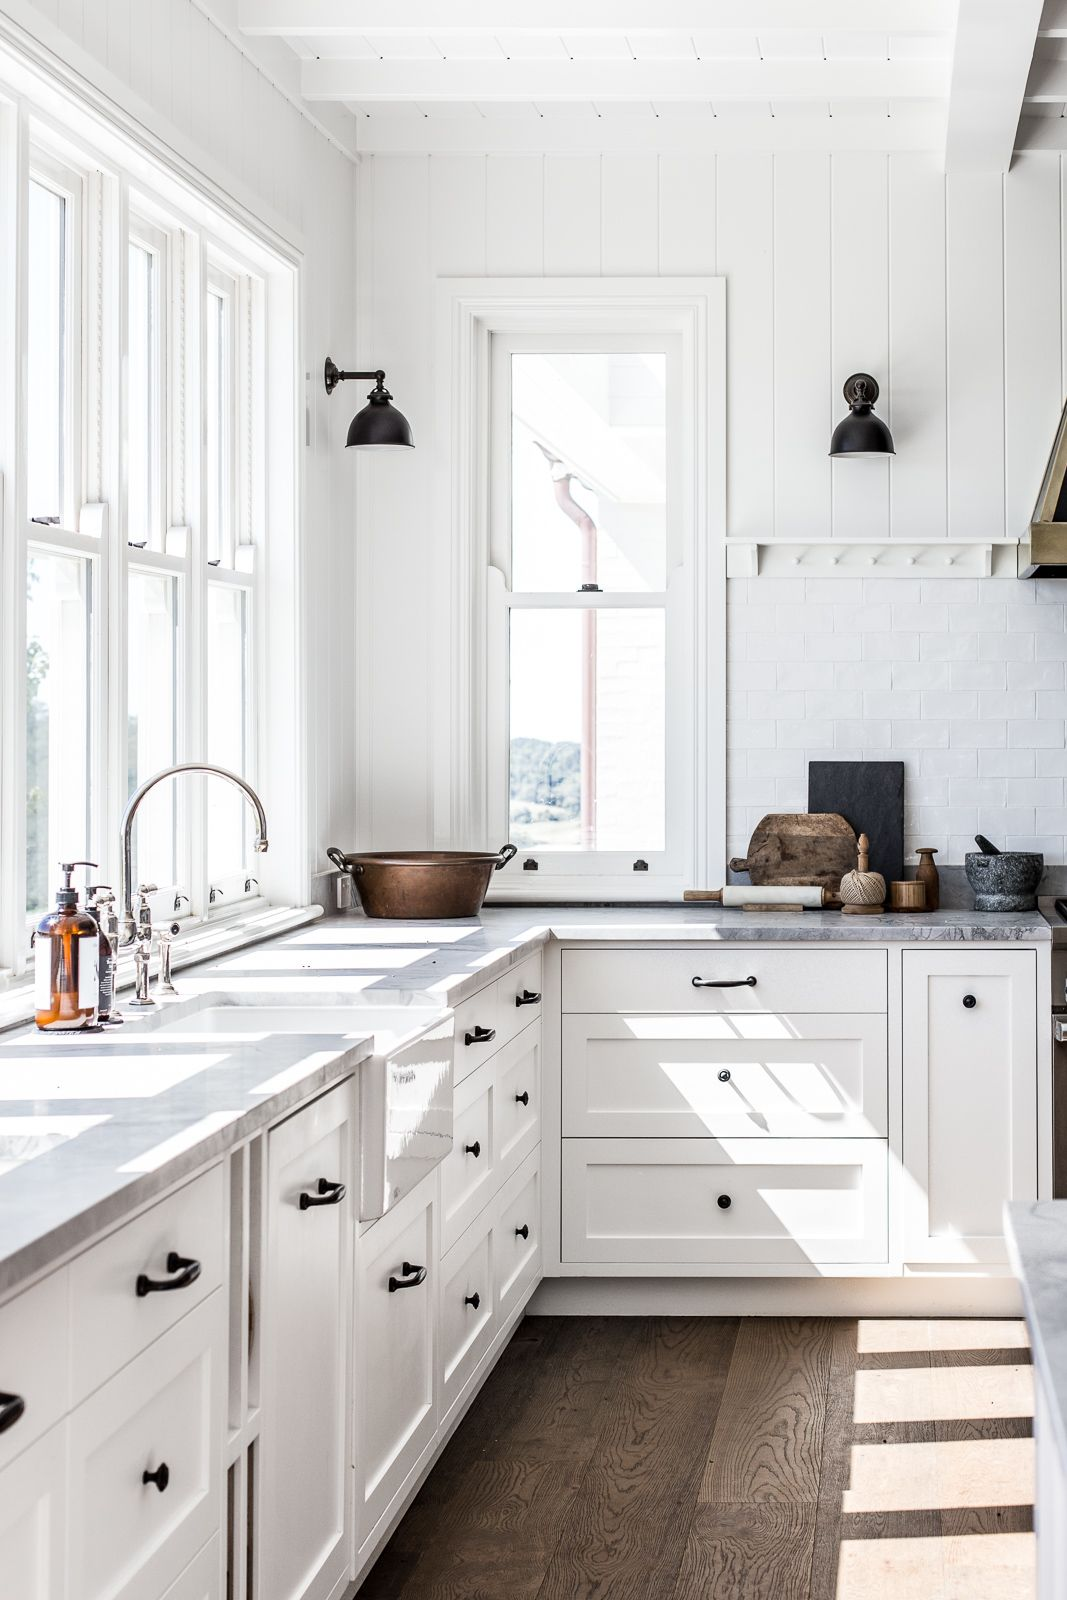 How To Create A Modern Farmhouse Kitchen - COTTONWOOD & CO